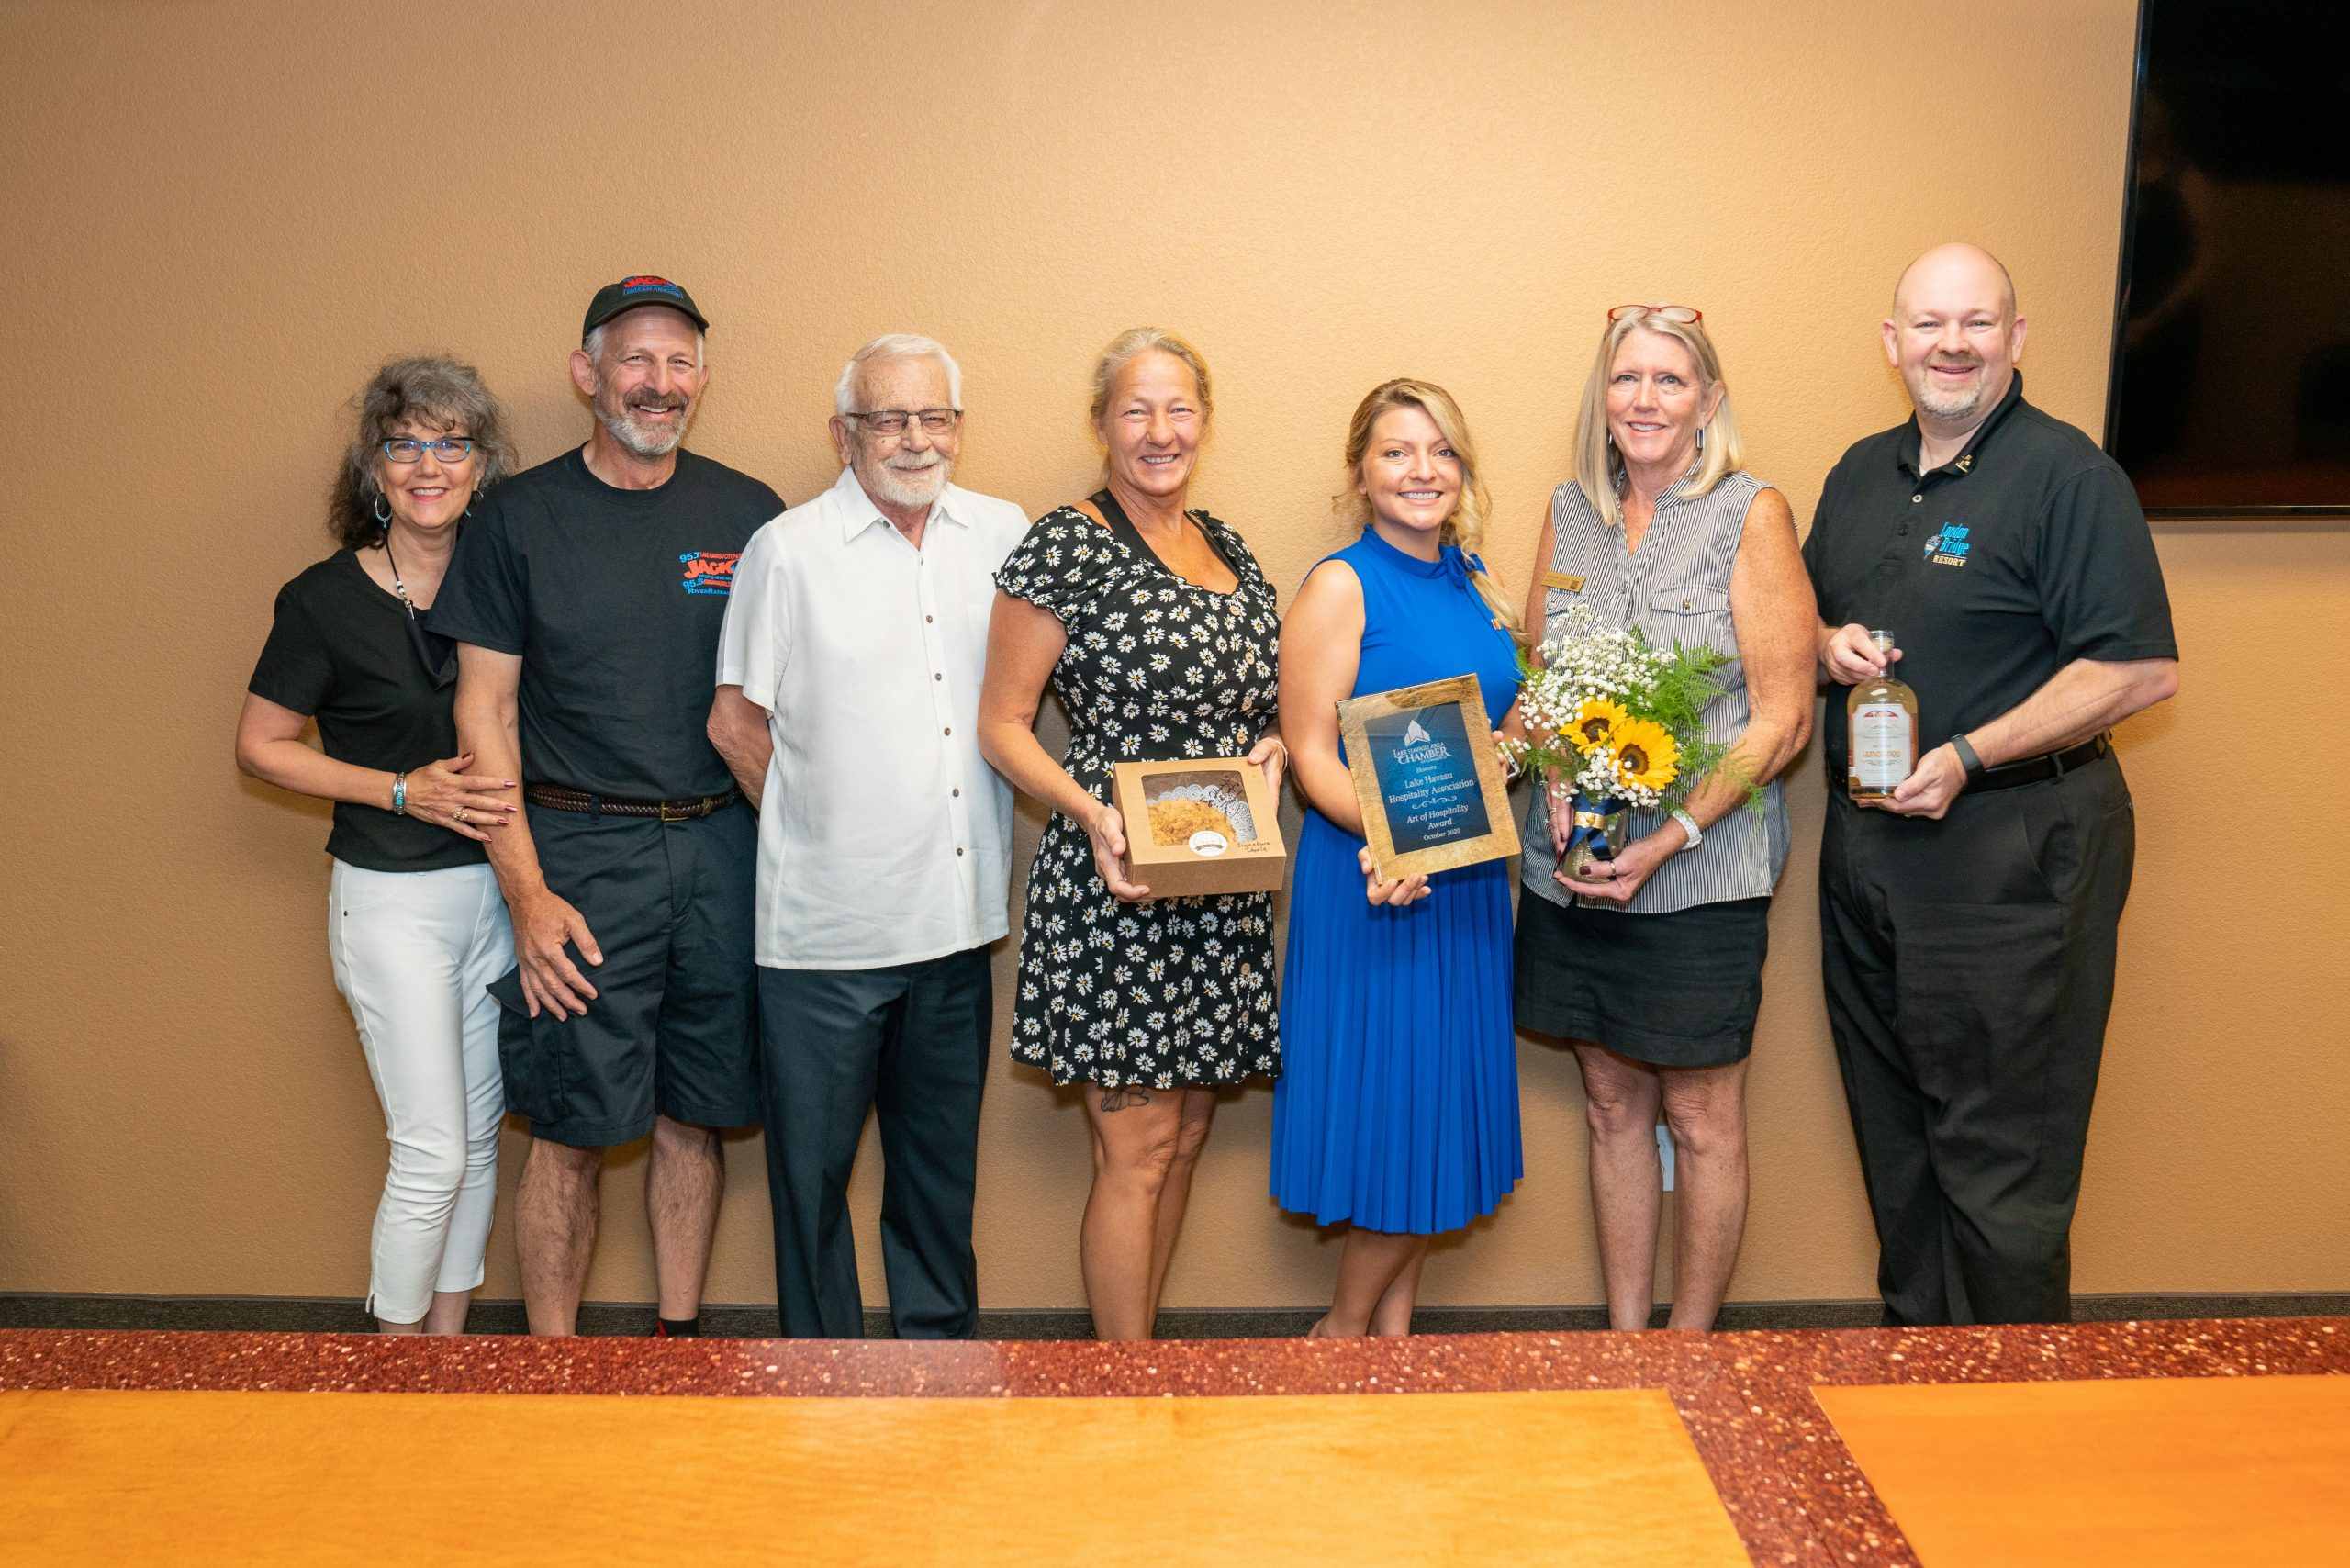 Chamber's Prize Patrol Honors Outstanding Members And Individuals